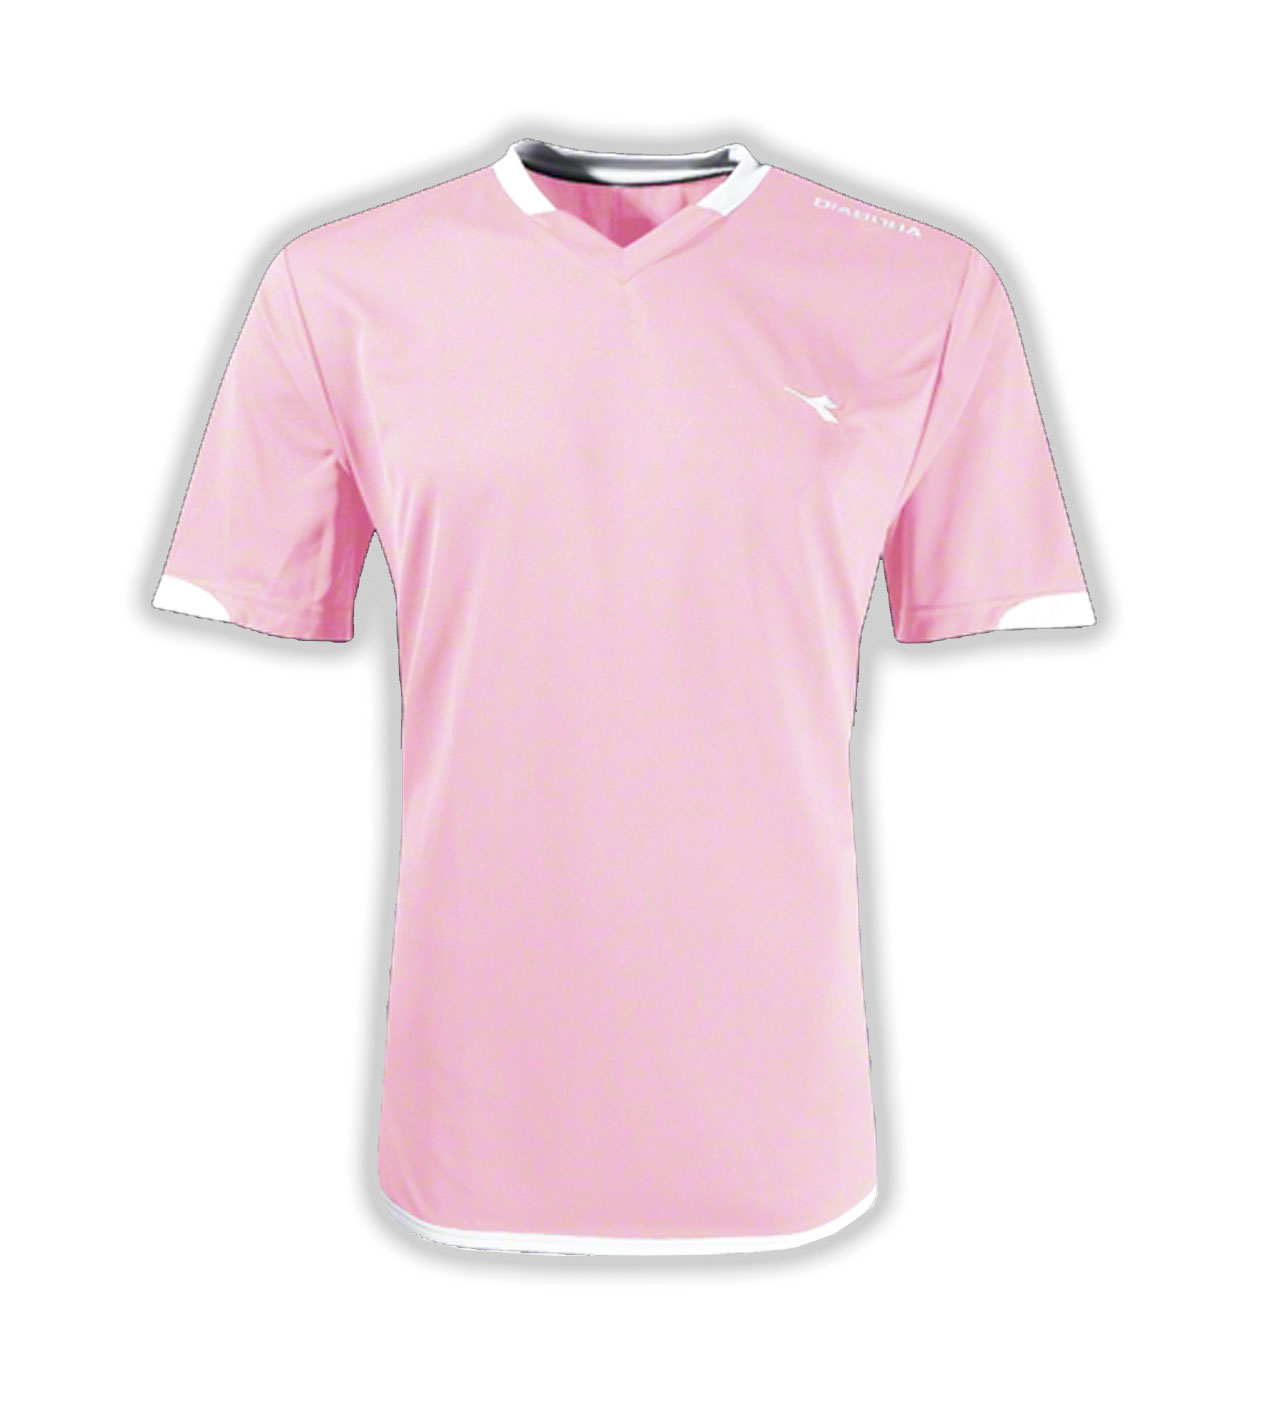 Diadora Uffizi soccer jersey in pink offered by Code Four Athletics